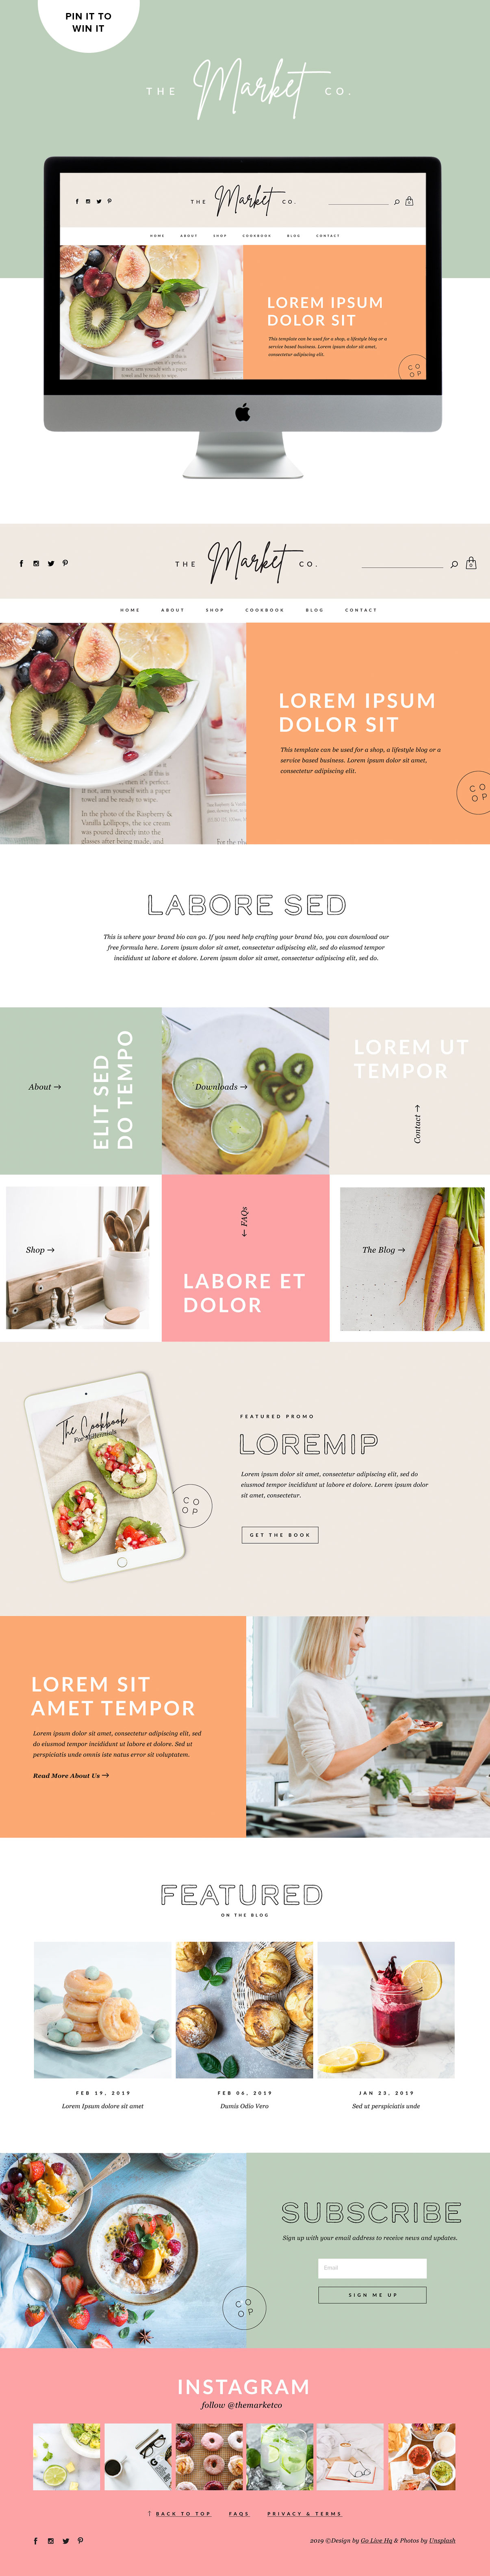 Colorful, Bright and Fun Squarespace Website Template Design For Squarespace   By GoLive